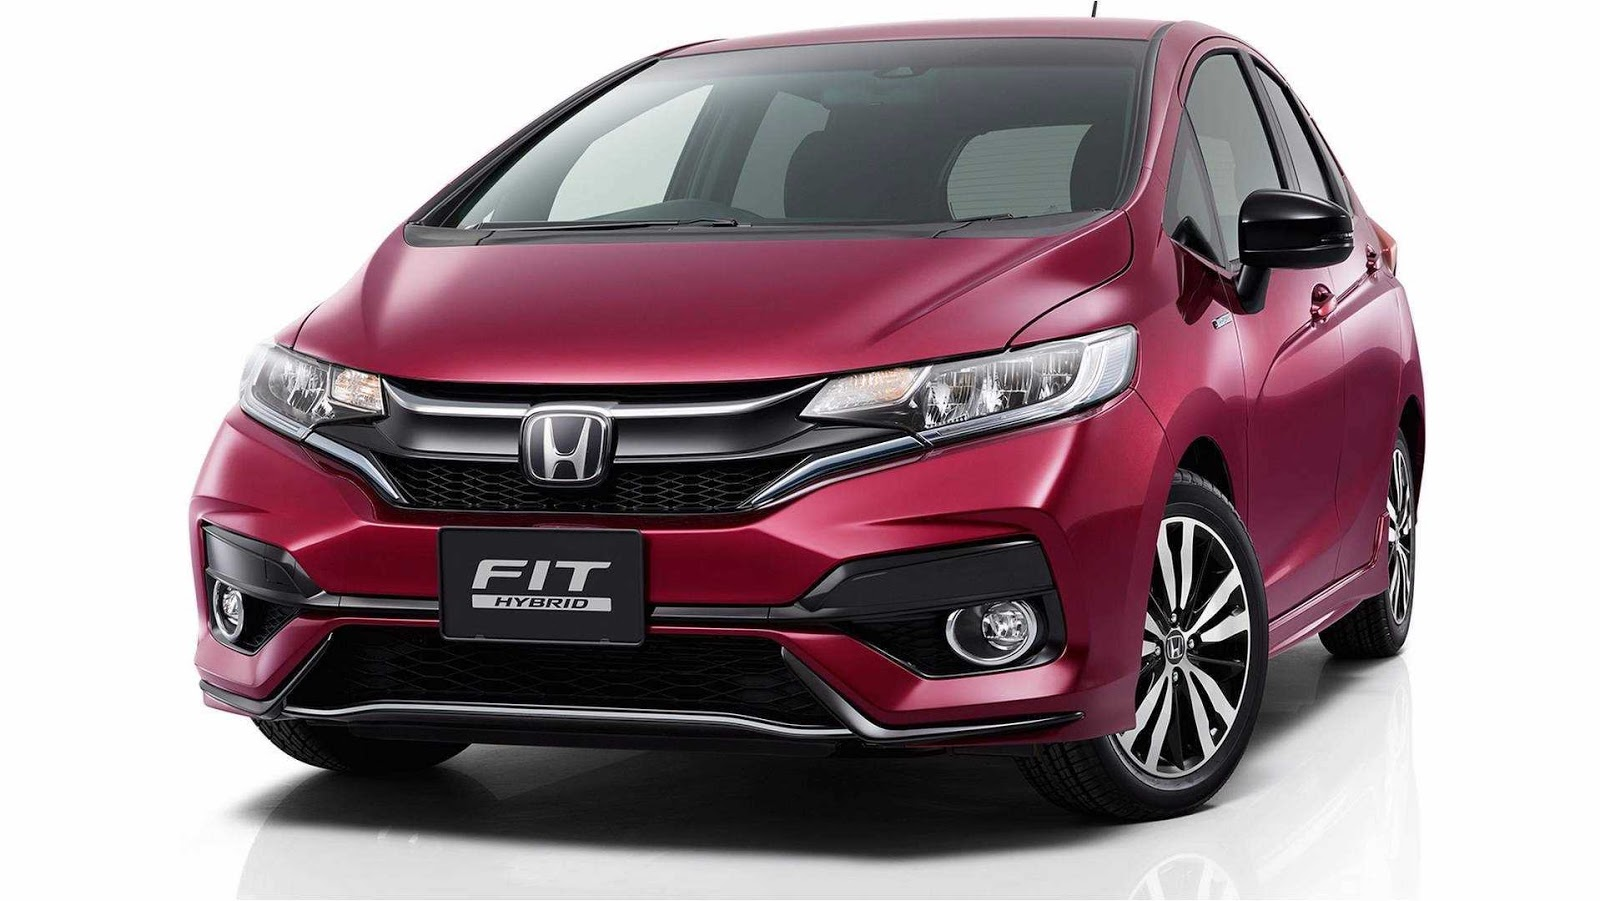 2018 Honda Fit Jazz Reveals Itself On Japanese Website